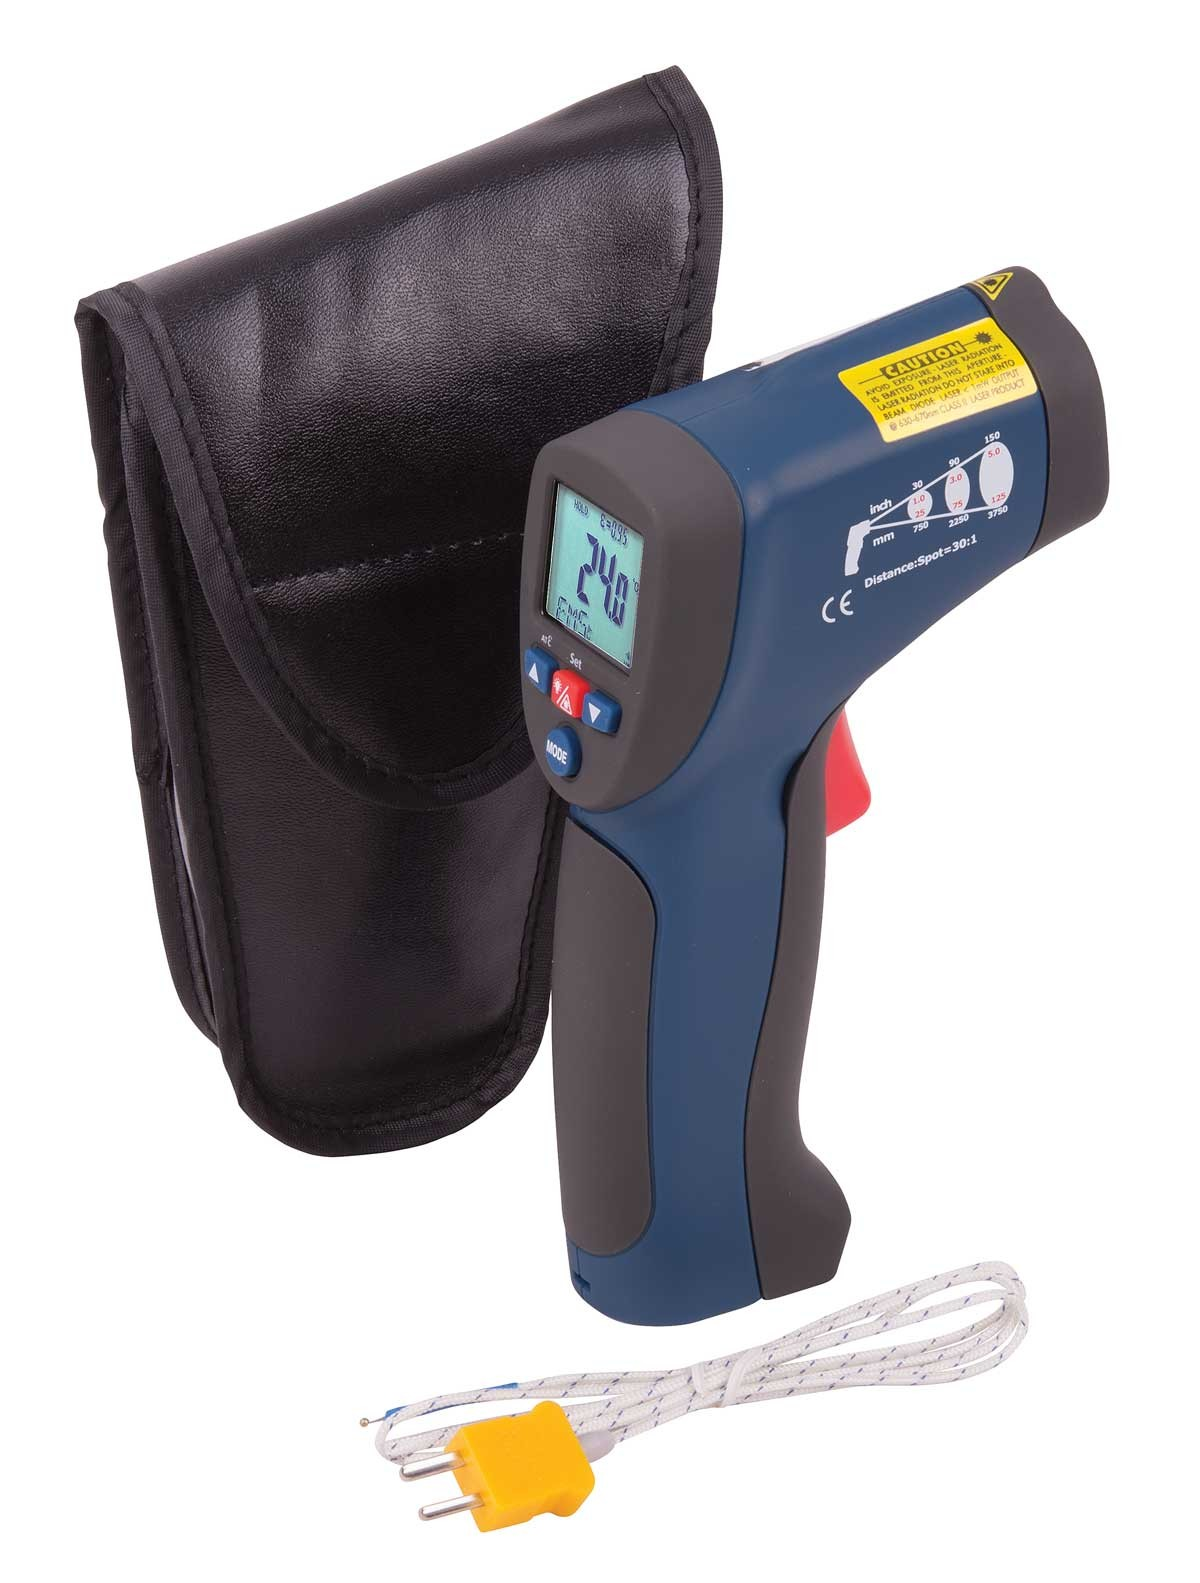 REED R2005 Infrared Thermometer, 30:1, 1922°F (1050°C), Integrated Type K Thermocouple-Included